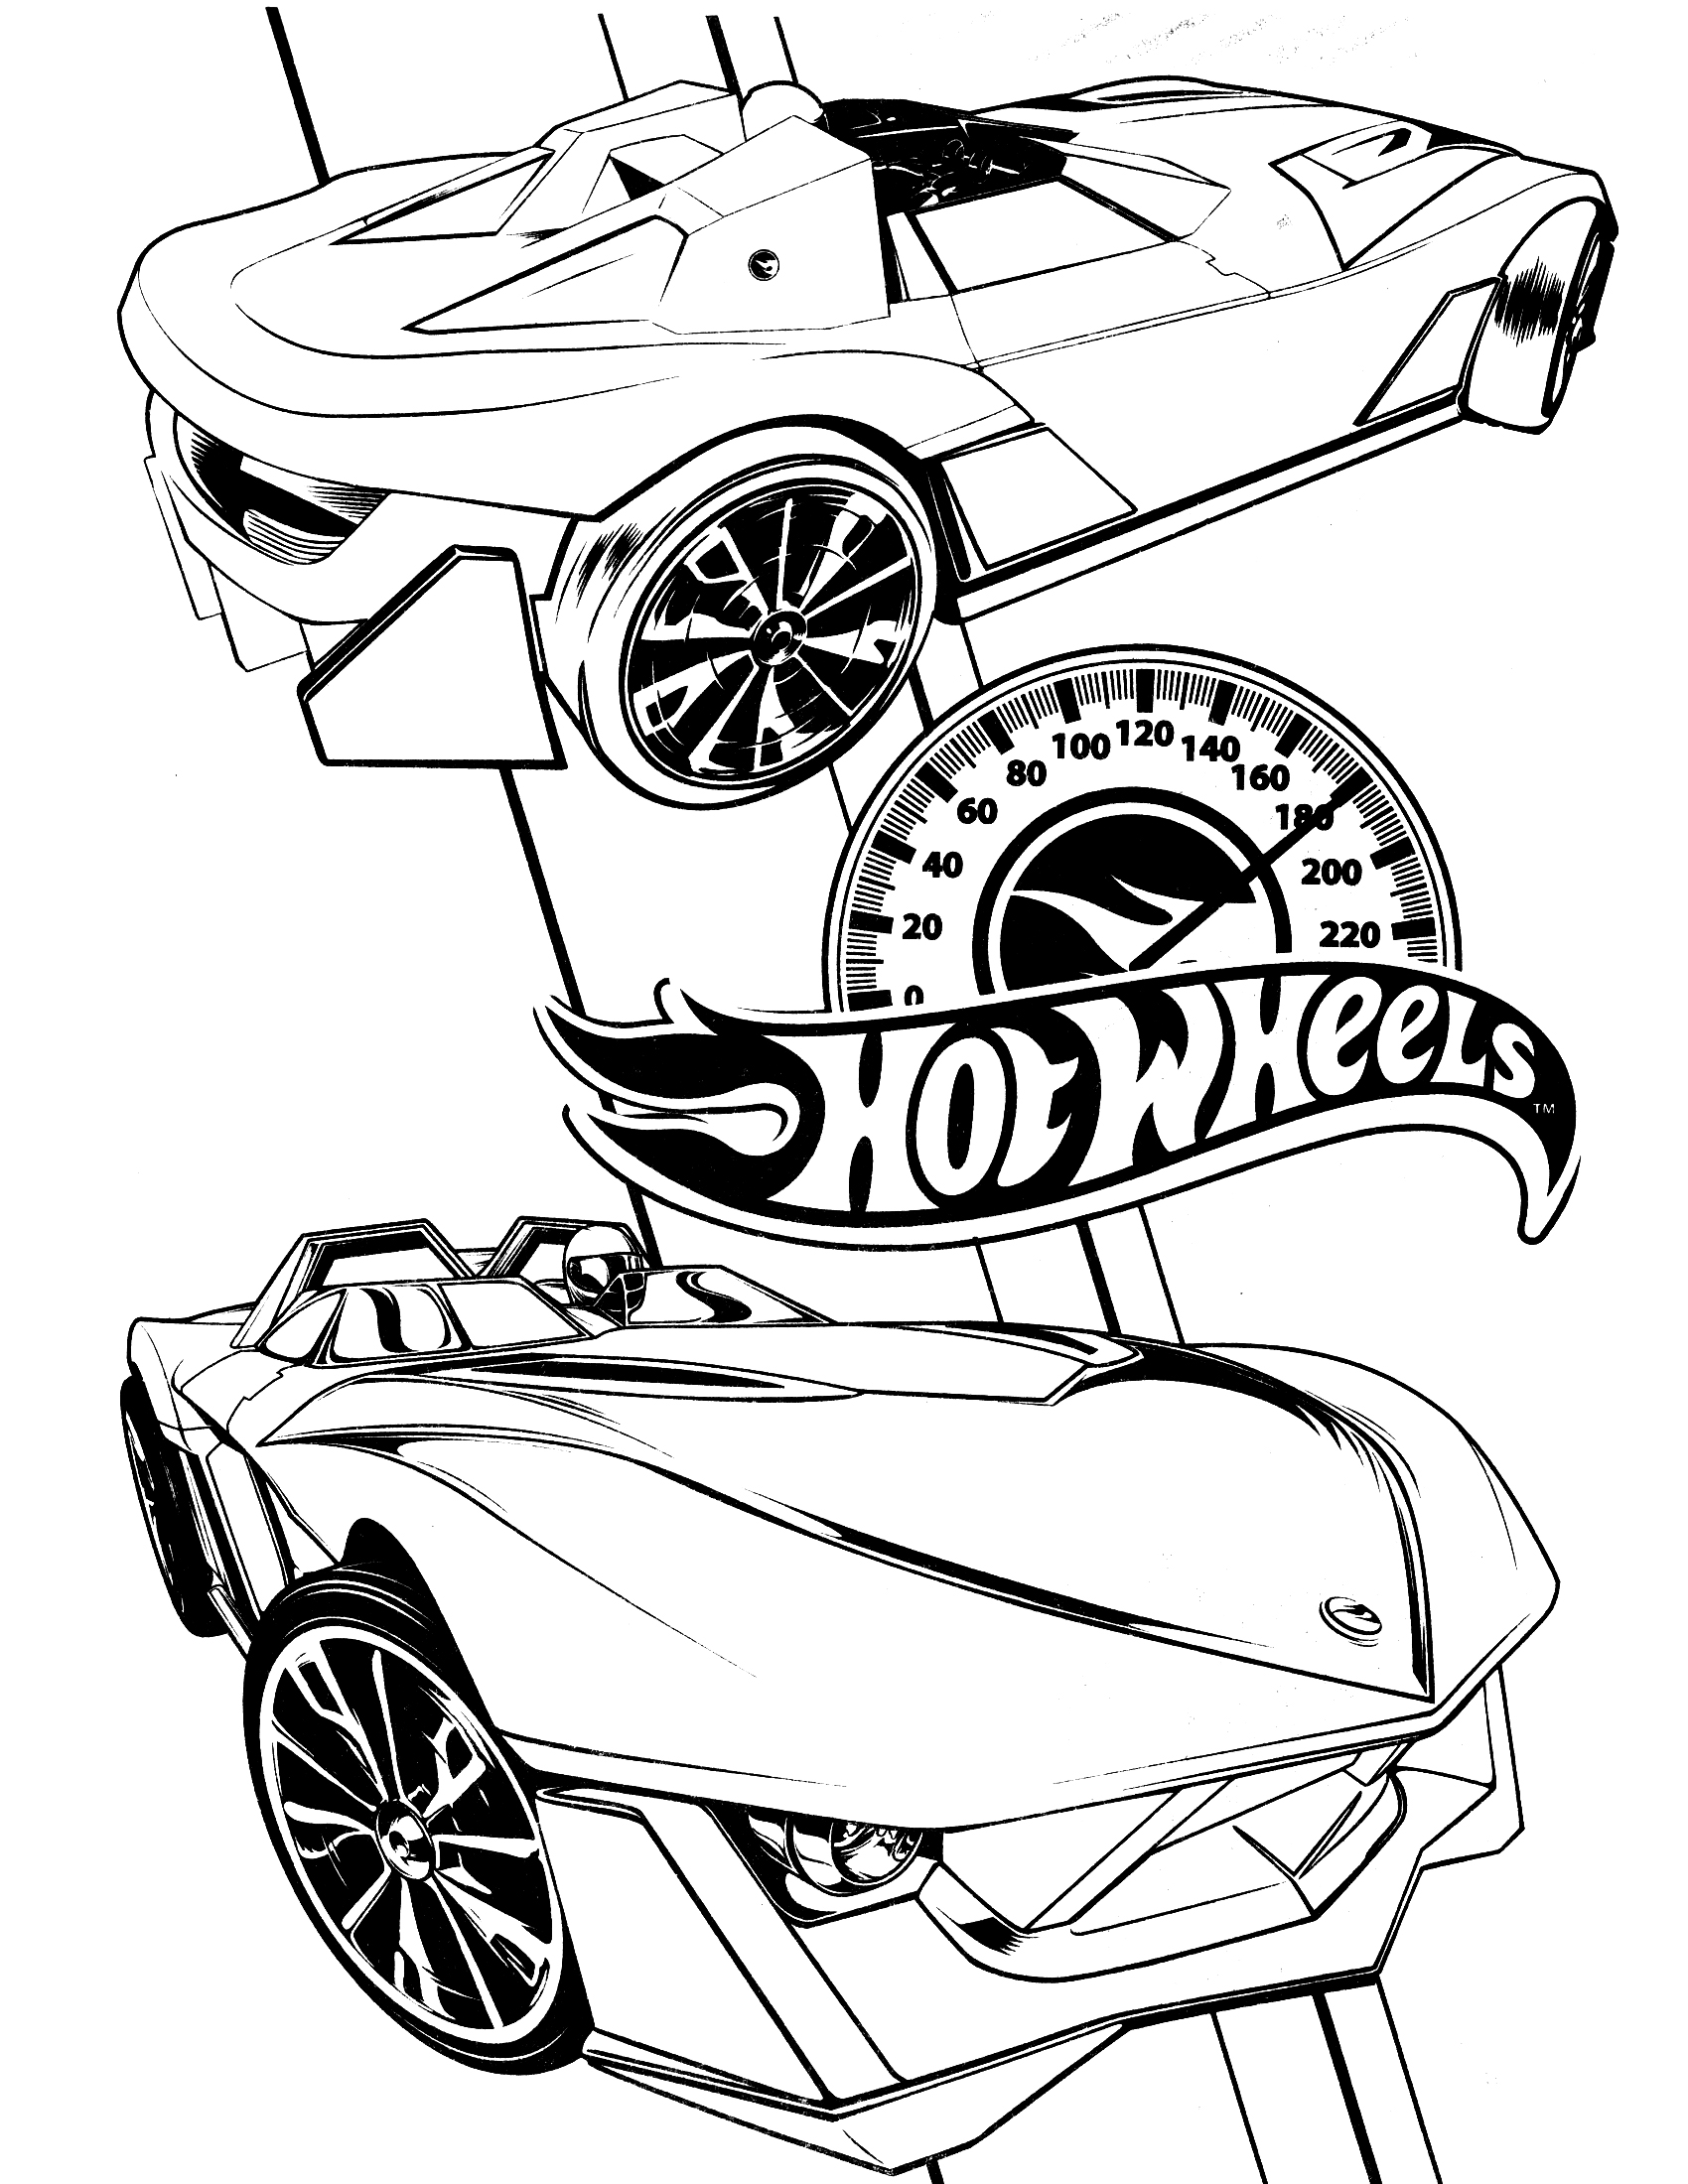 Coloring pages for hot wheels - Hot Wheels Coloring Pages